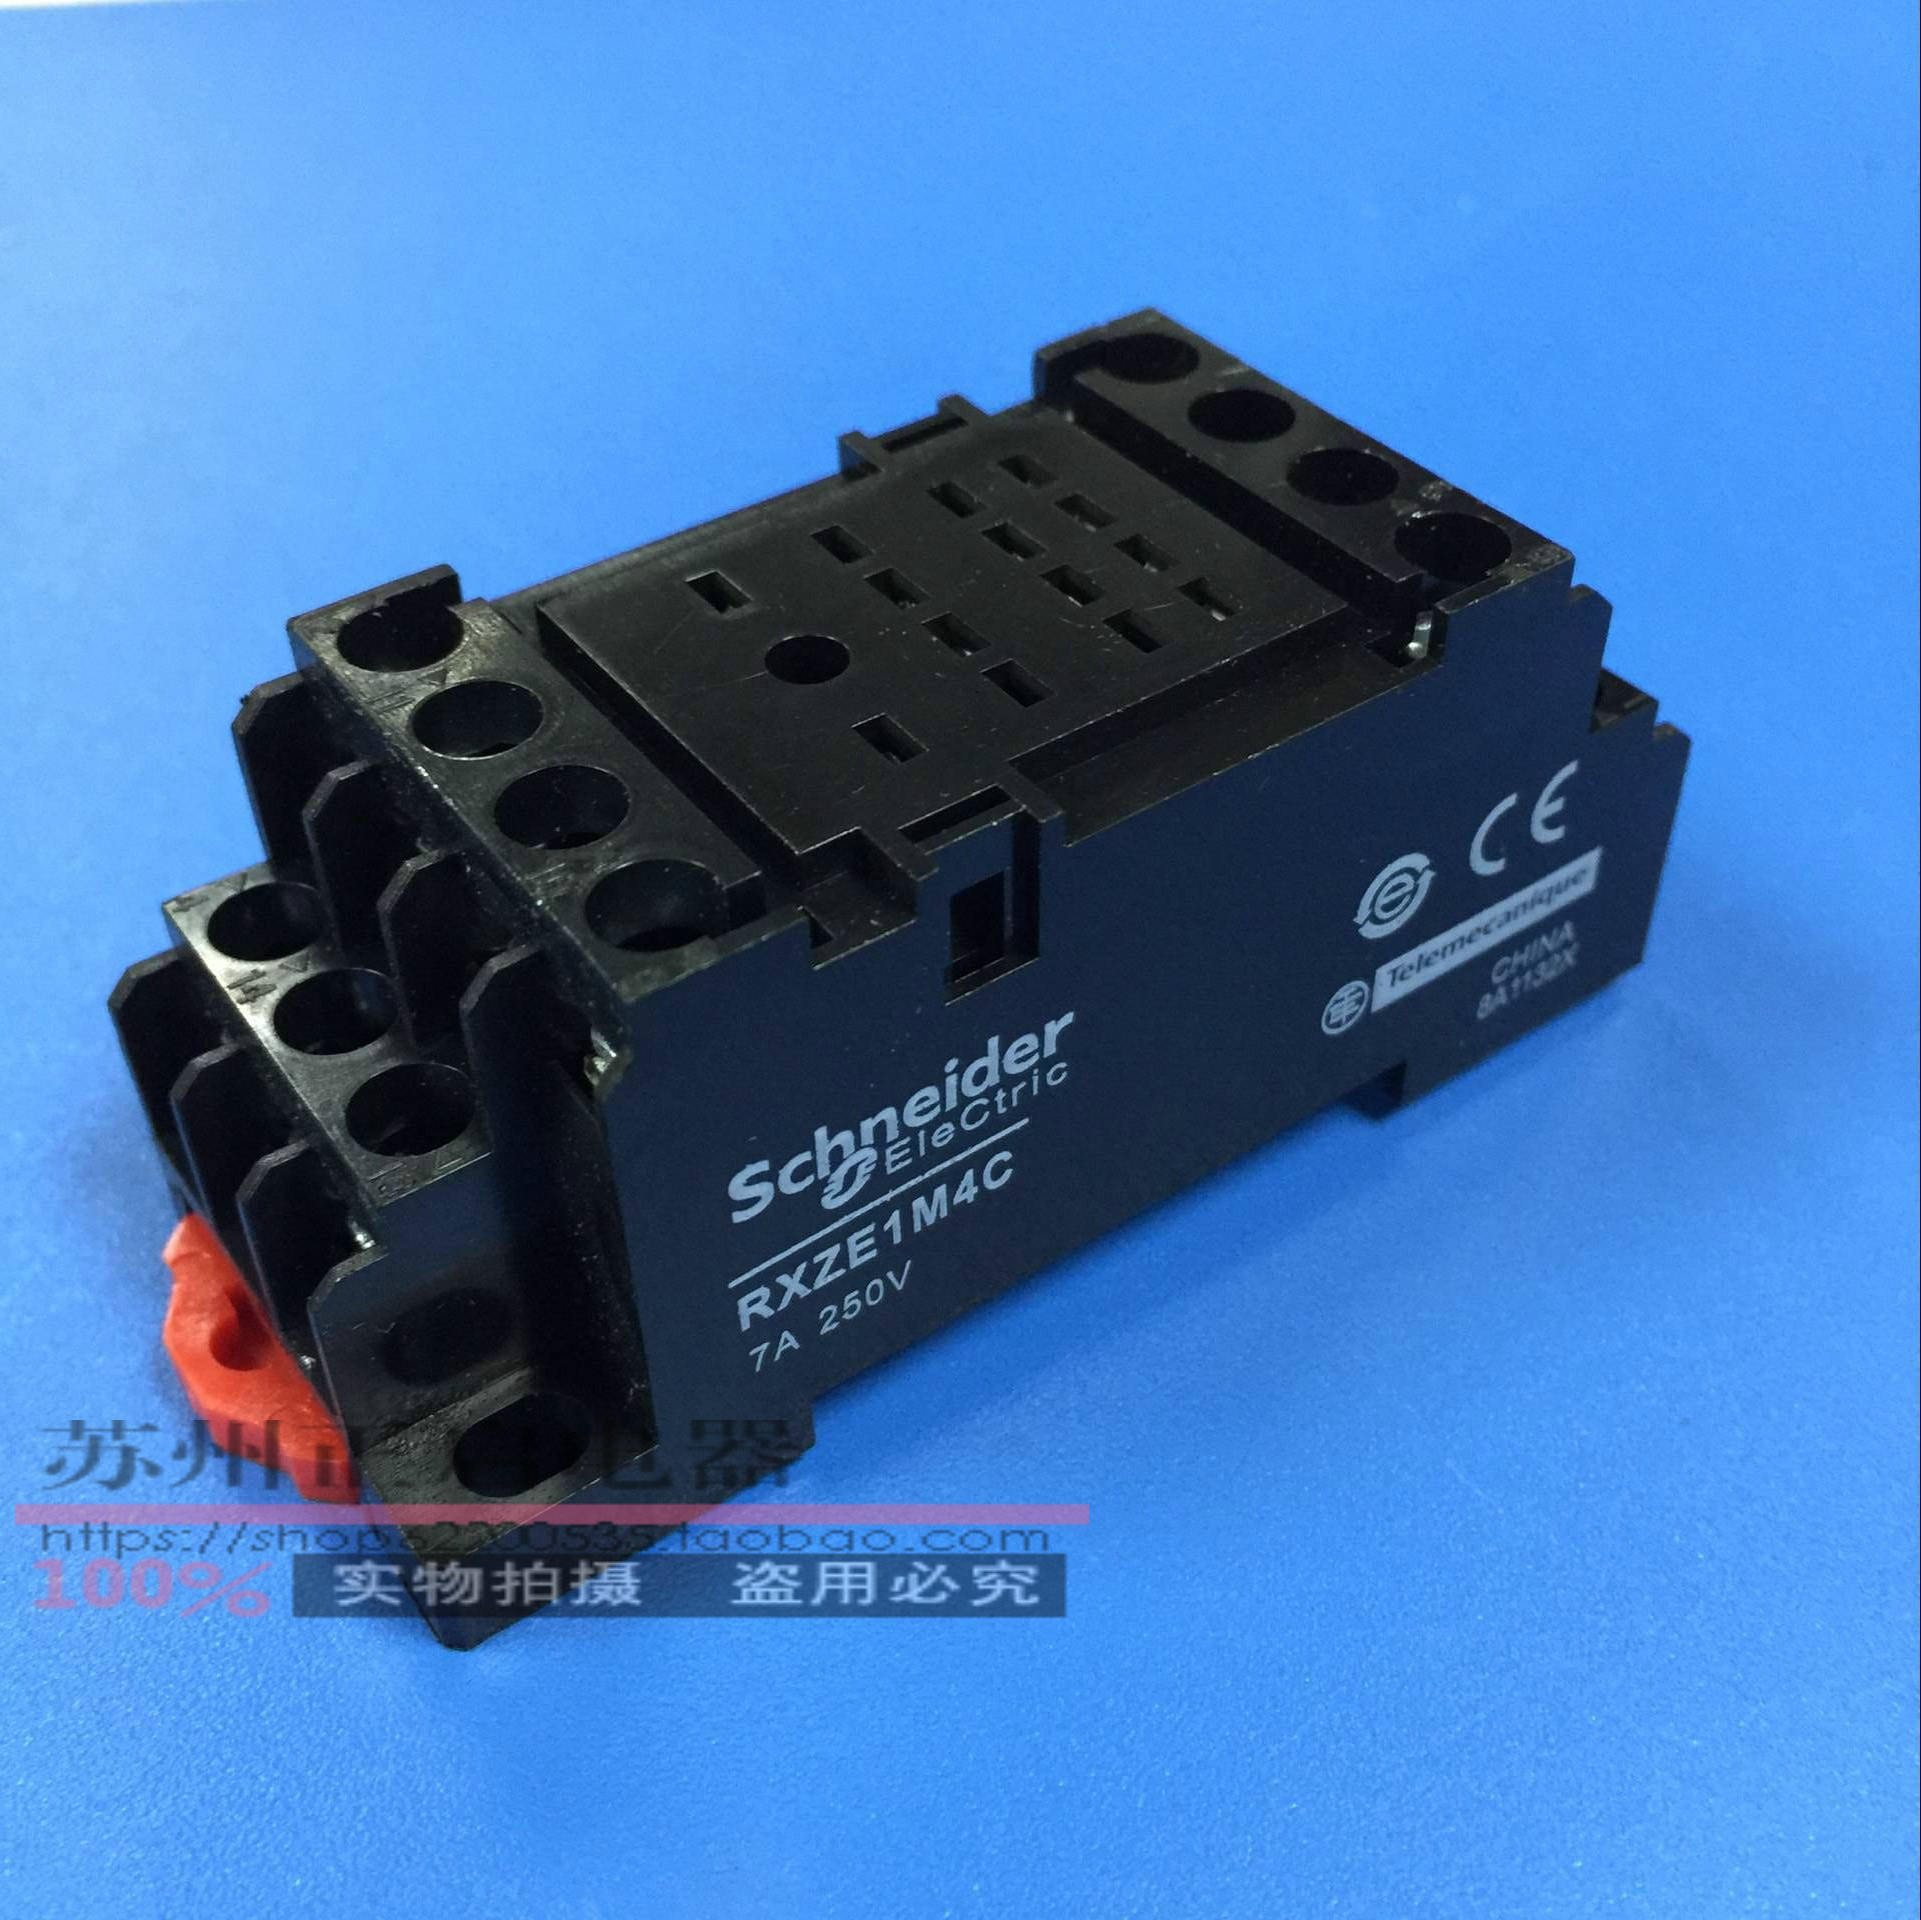 Usd 502 Schneider Intermediate Relay Base Rxze1m4c Small 14 Terminal Relays Weidmuller Lightbox Moreview